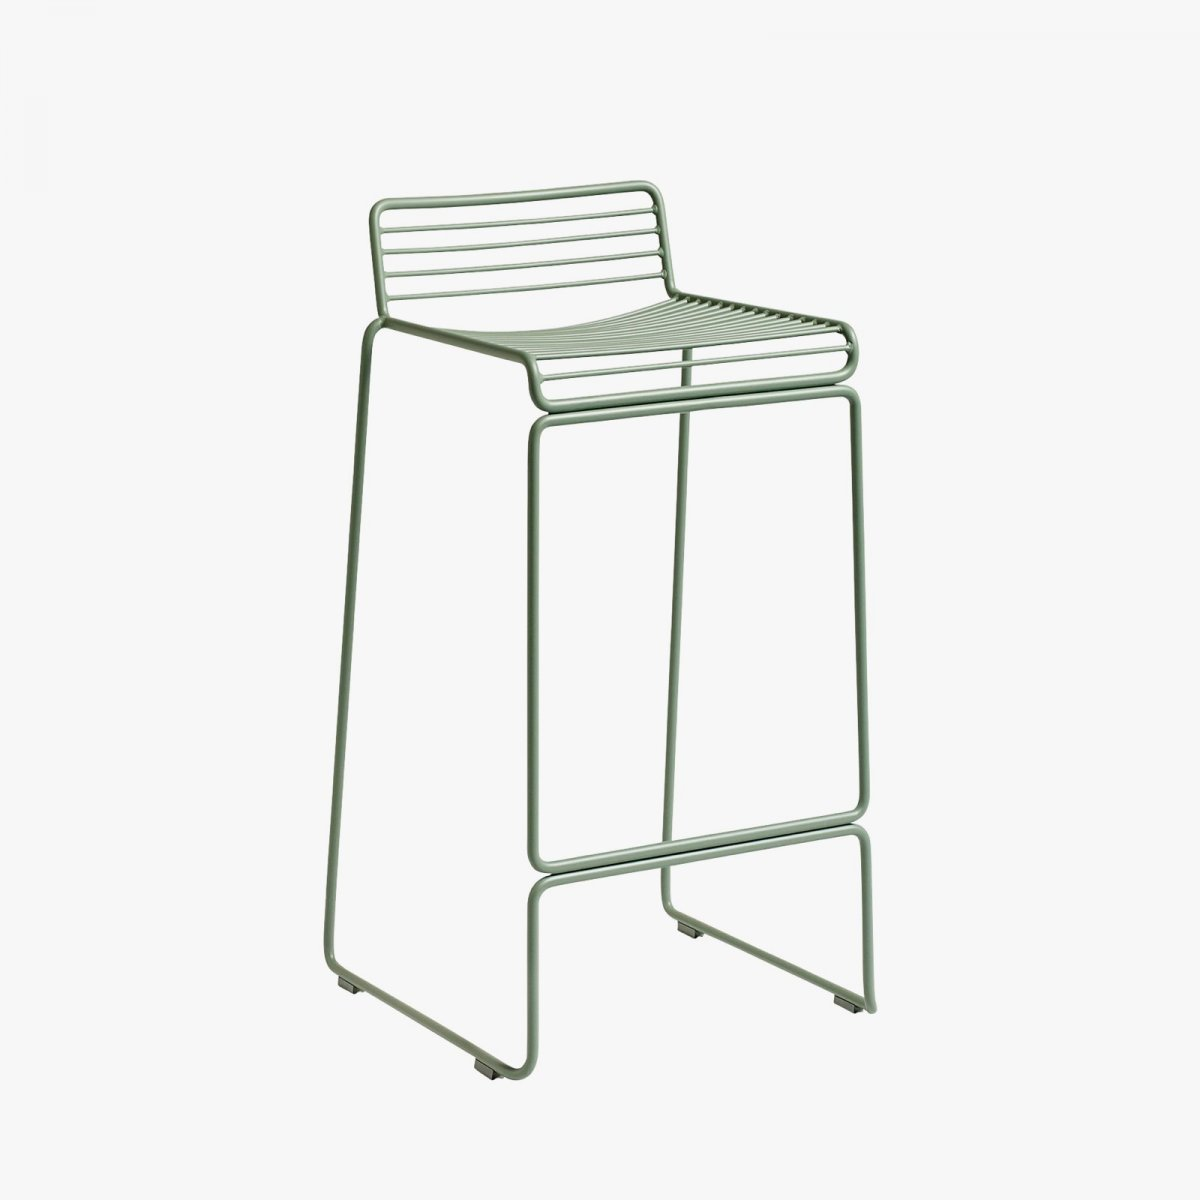 Hee Bar Stool, high, fall green.